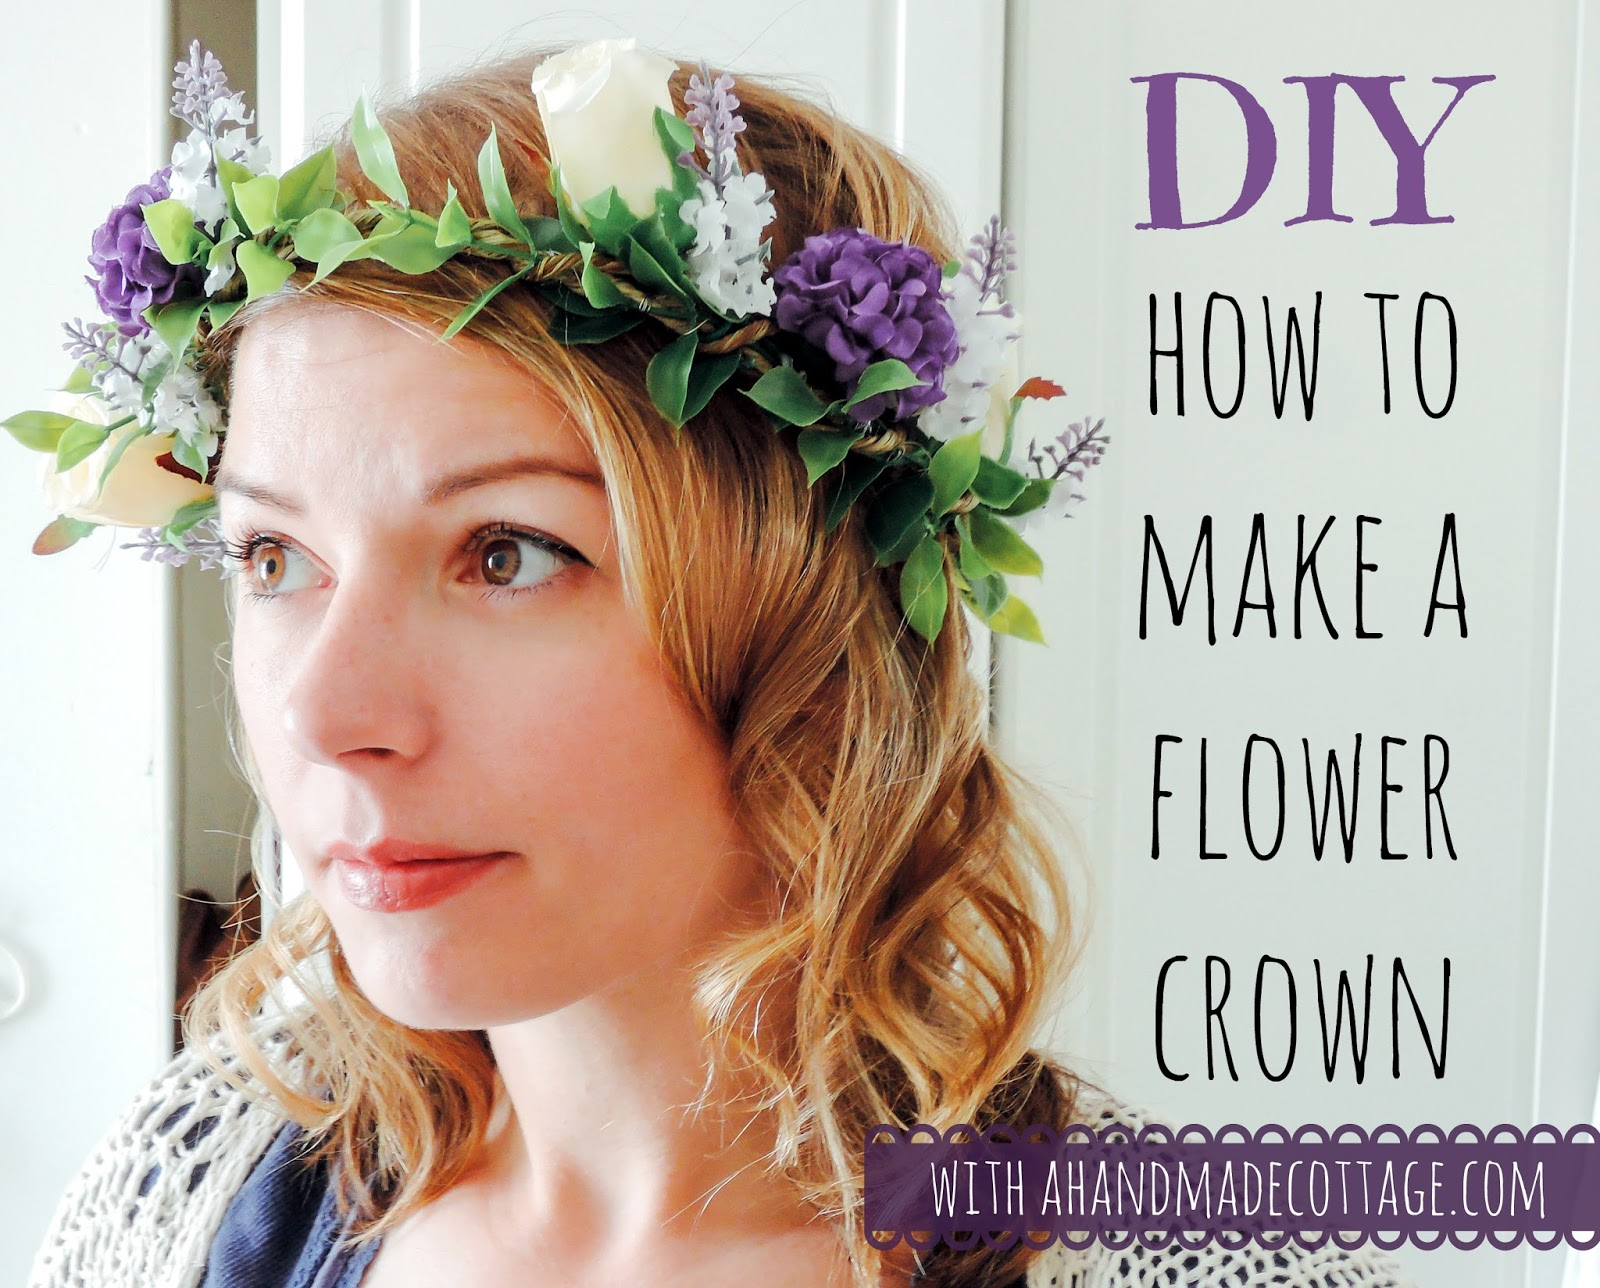 A handmade cottage how to make a flower crown for weddings how to make a flower crown izmirmasajfo